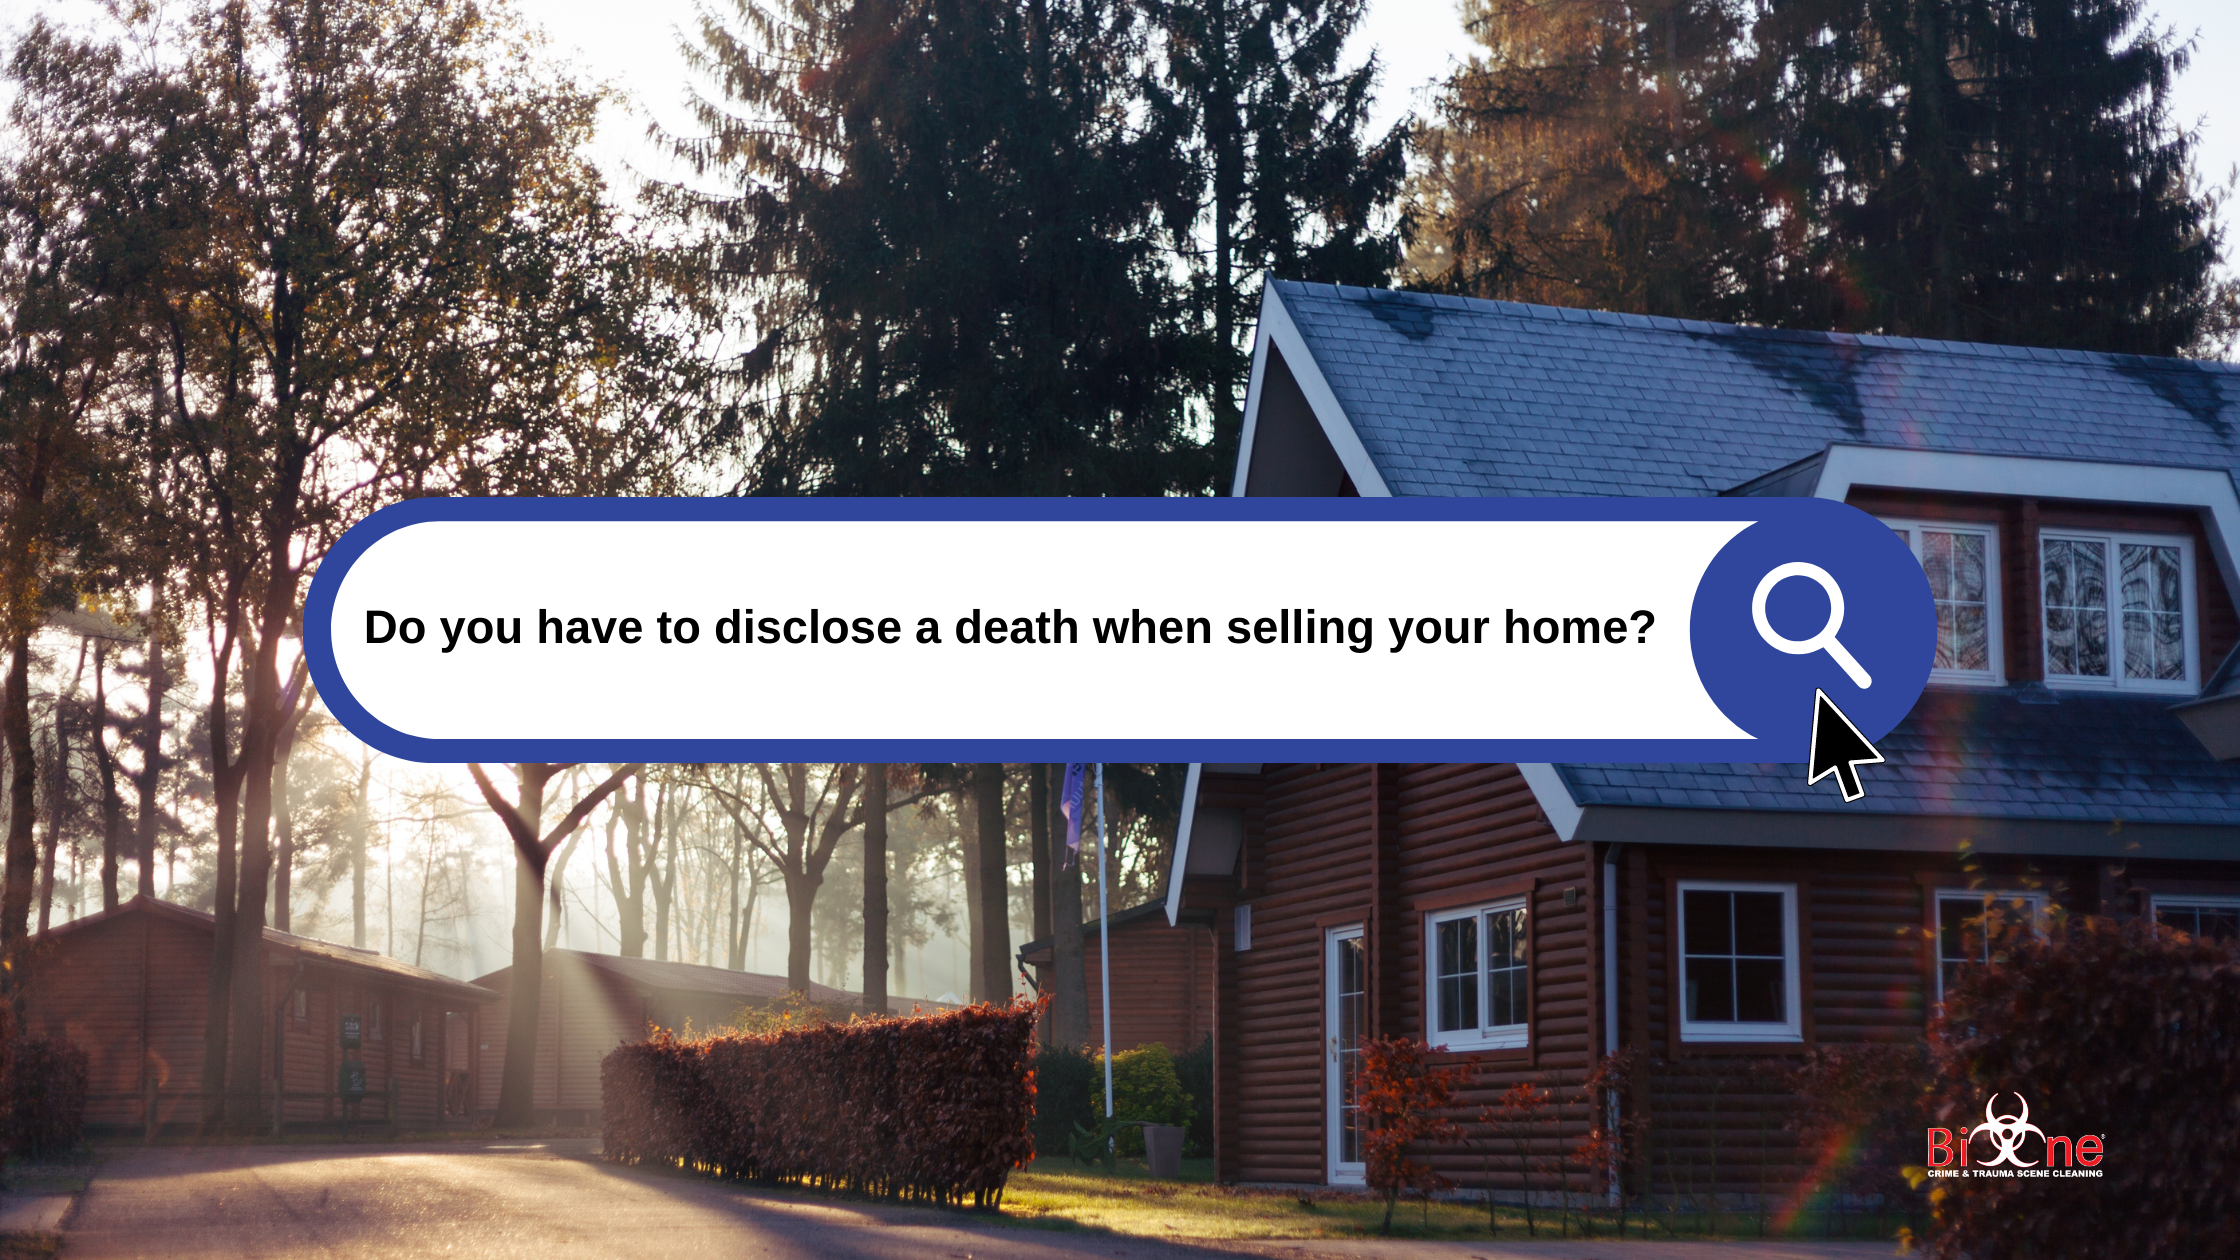 In California, Do you Have to Disclose a Death When Selling Your Home?